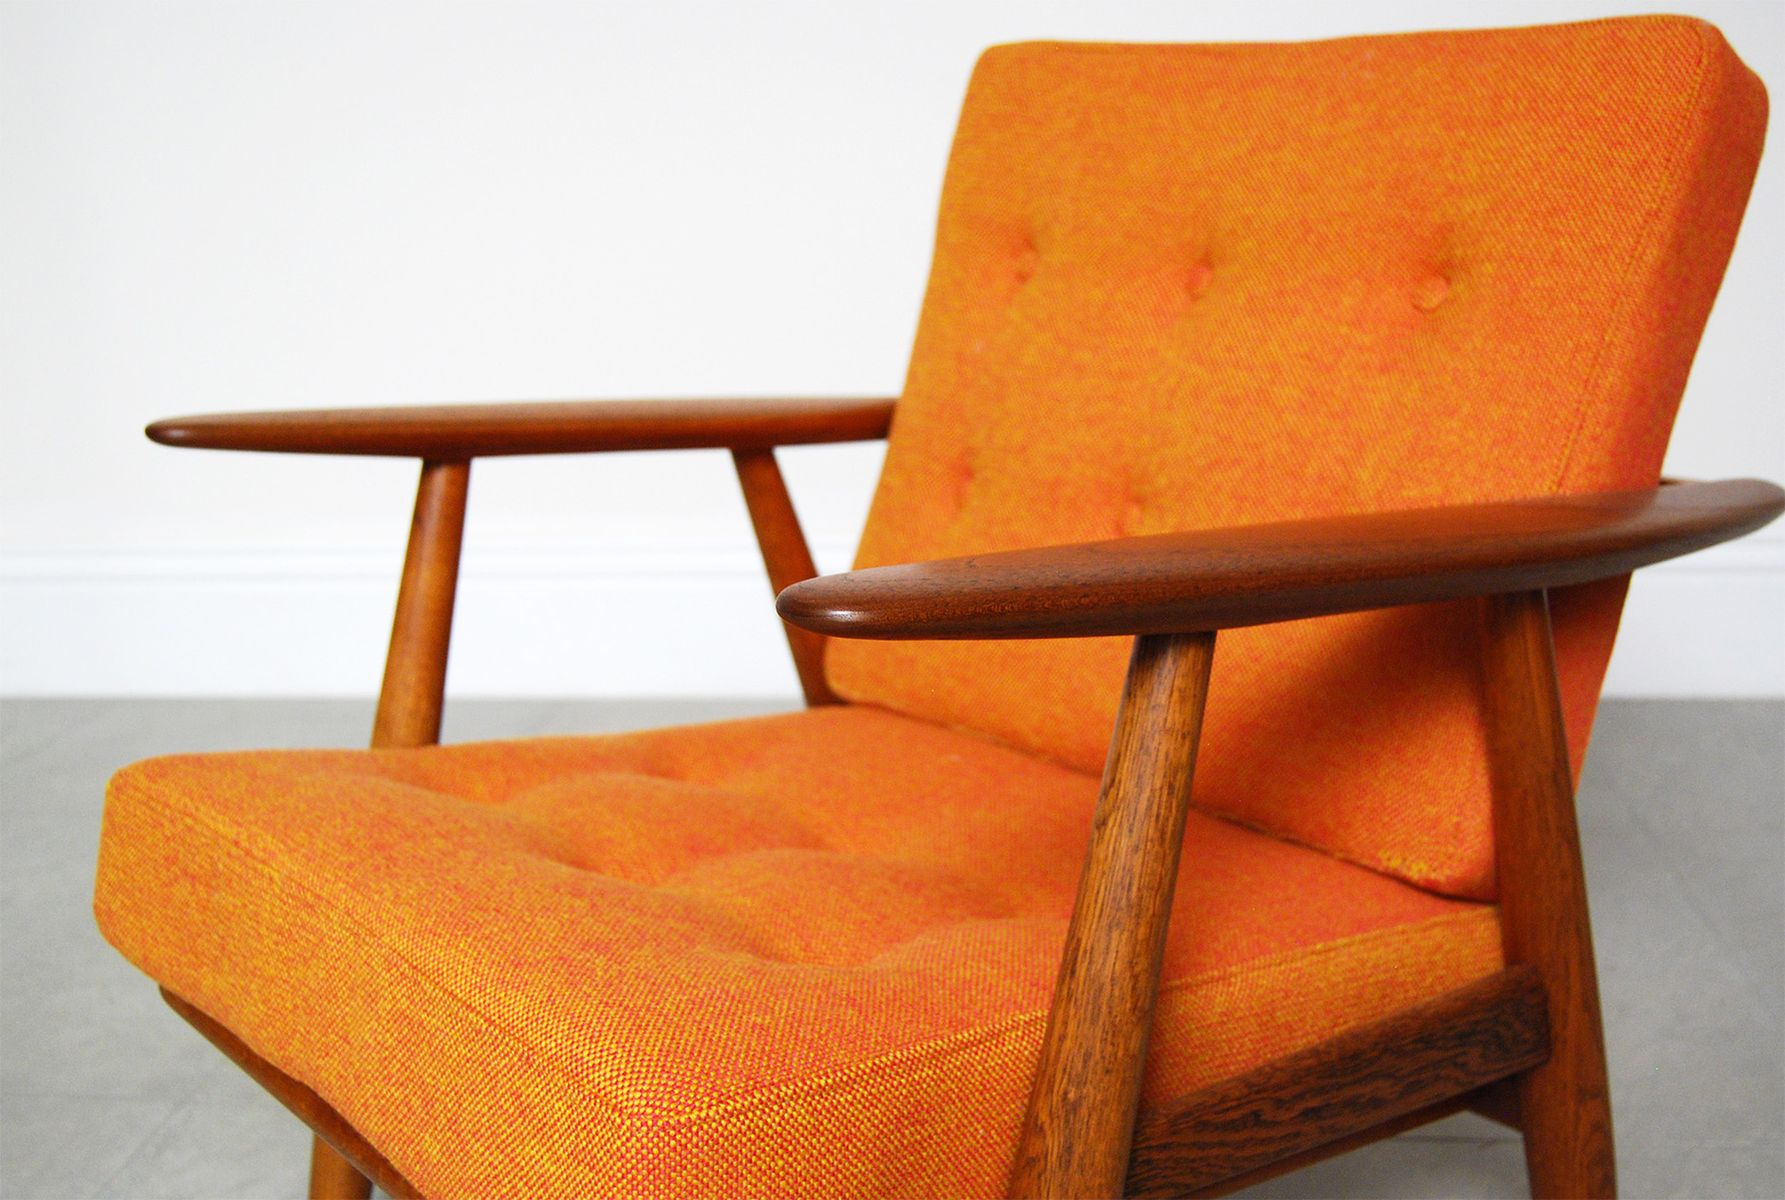 GE 240 Cigar Chair By Hans Wegner For Getama For Sale At Pamono